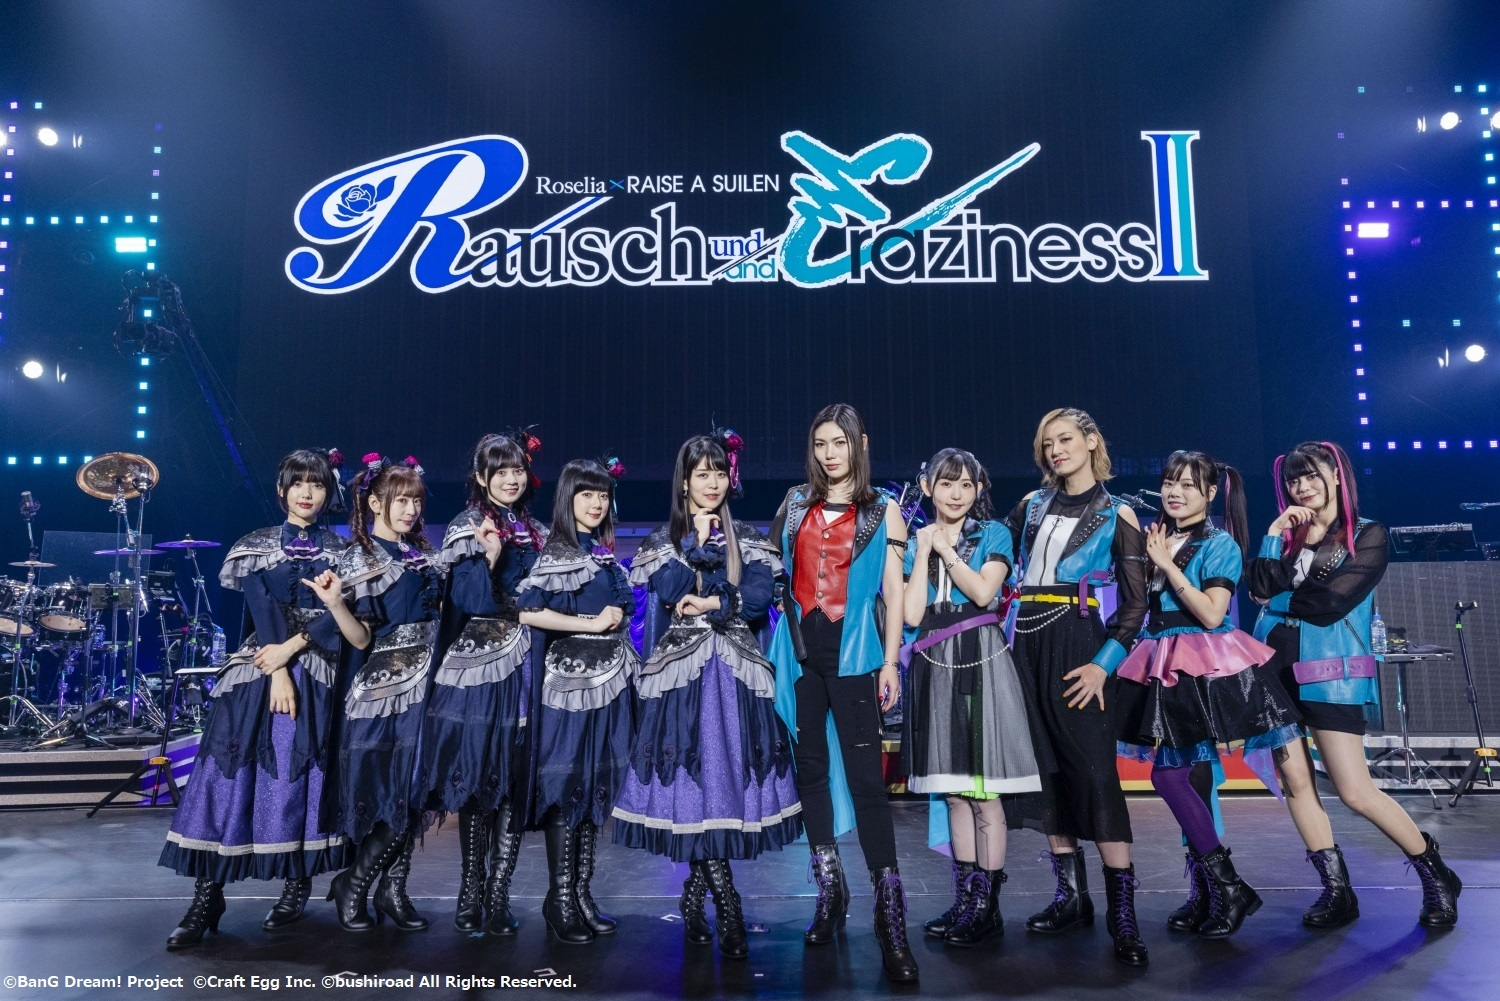 Roselia×RAISE A SUILEN 合同ライブ『Rausch und/and Craziness Ⅱ』集合写真 (c)BanG Dream! Project (c)Craft Egg Inc. (c)bushiroad All Rights Reserved.